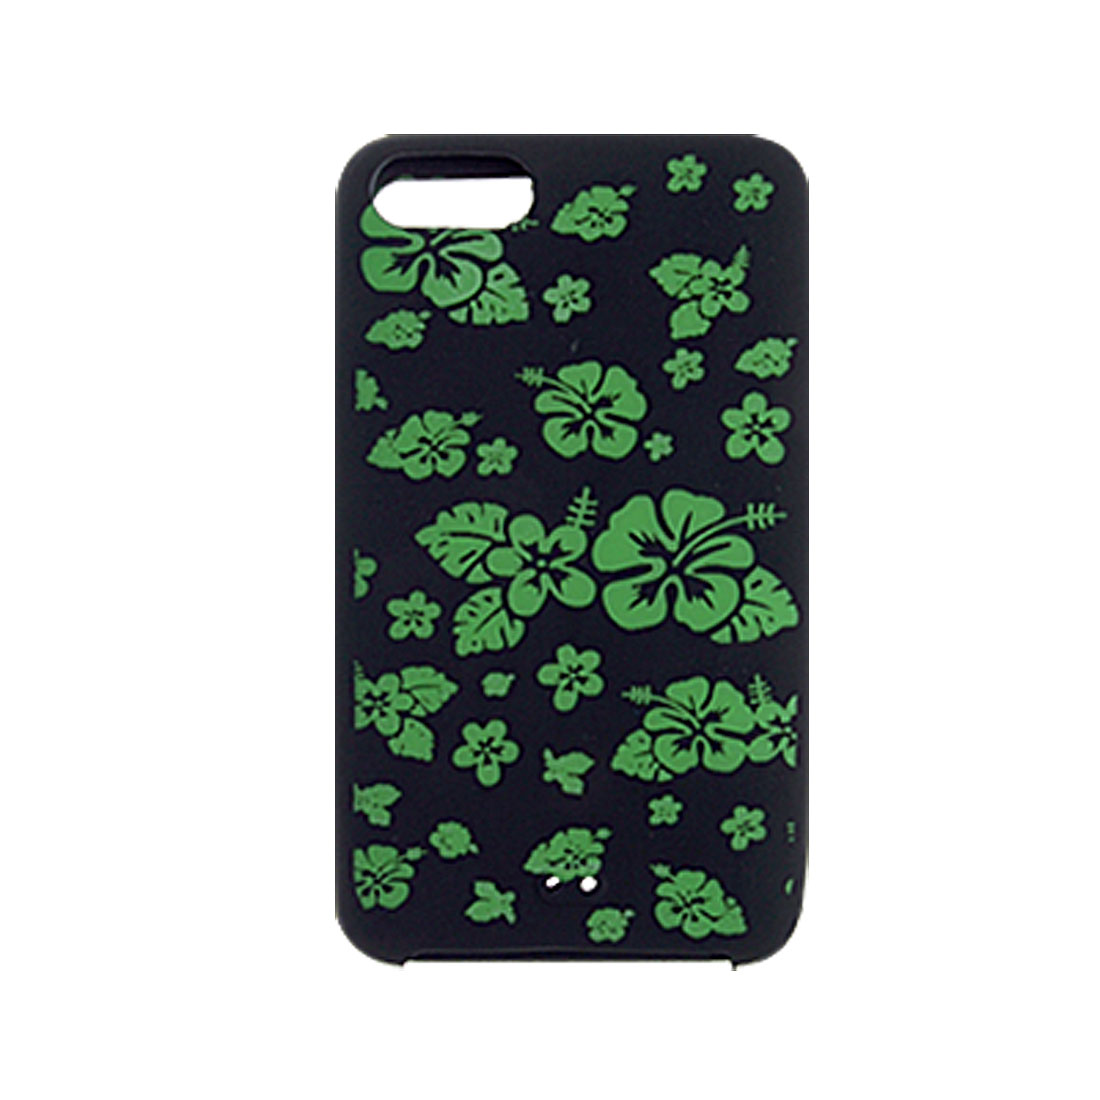 Black Green Flower Silicone Case Cover Skin + Screen Guard for iPod Touch 2